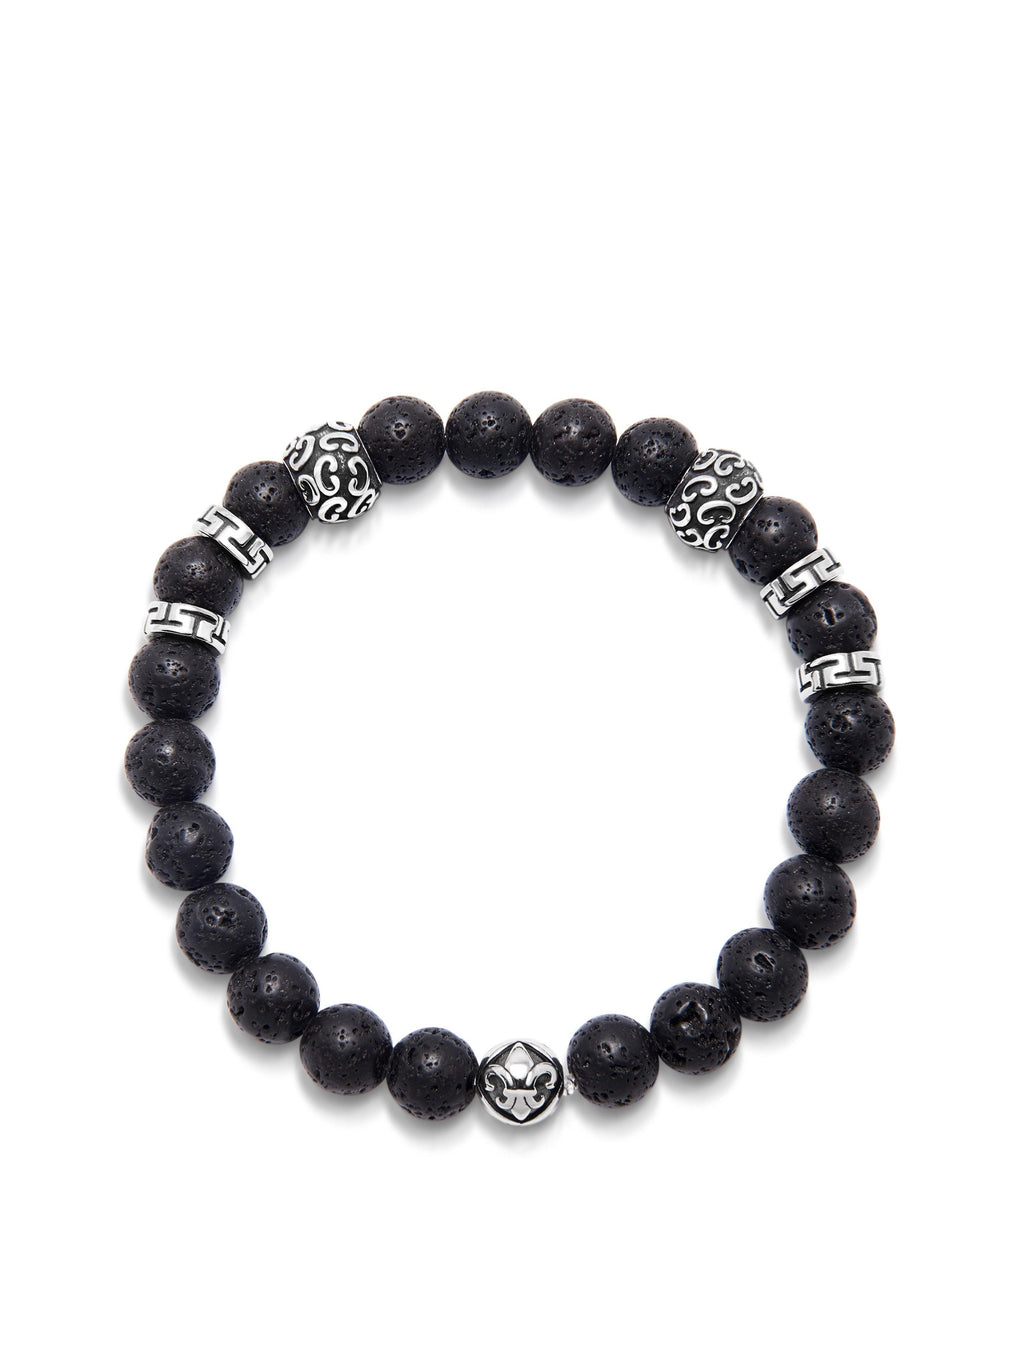 Men's Wristband with 8MM Lava Stone and Silver